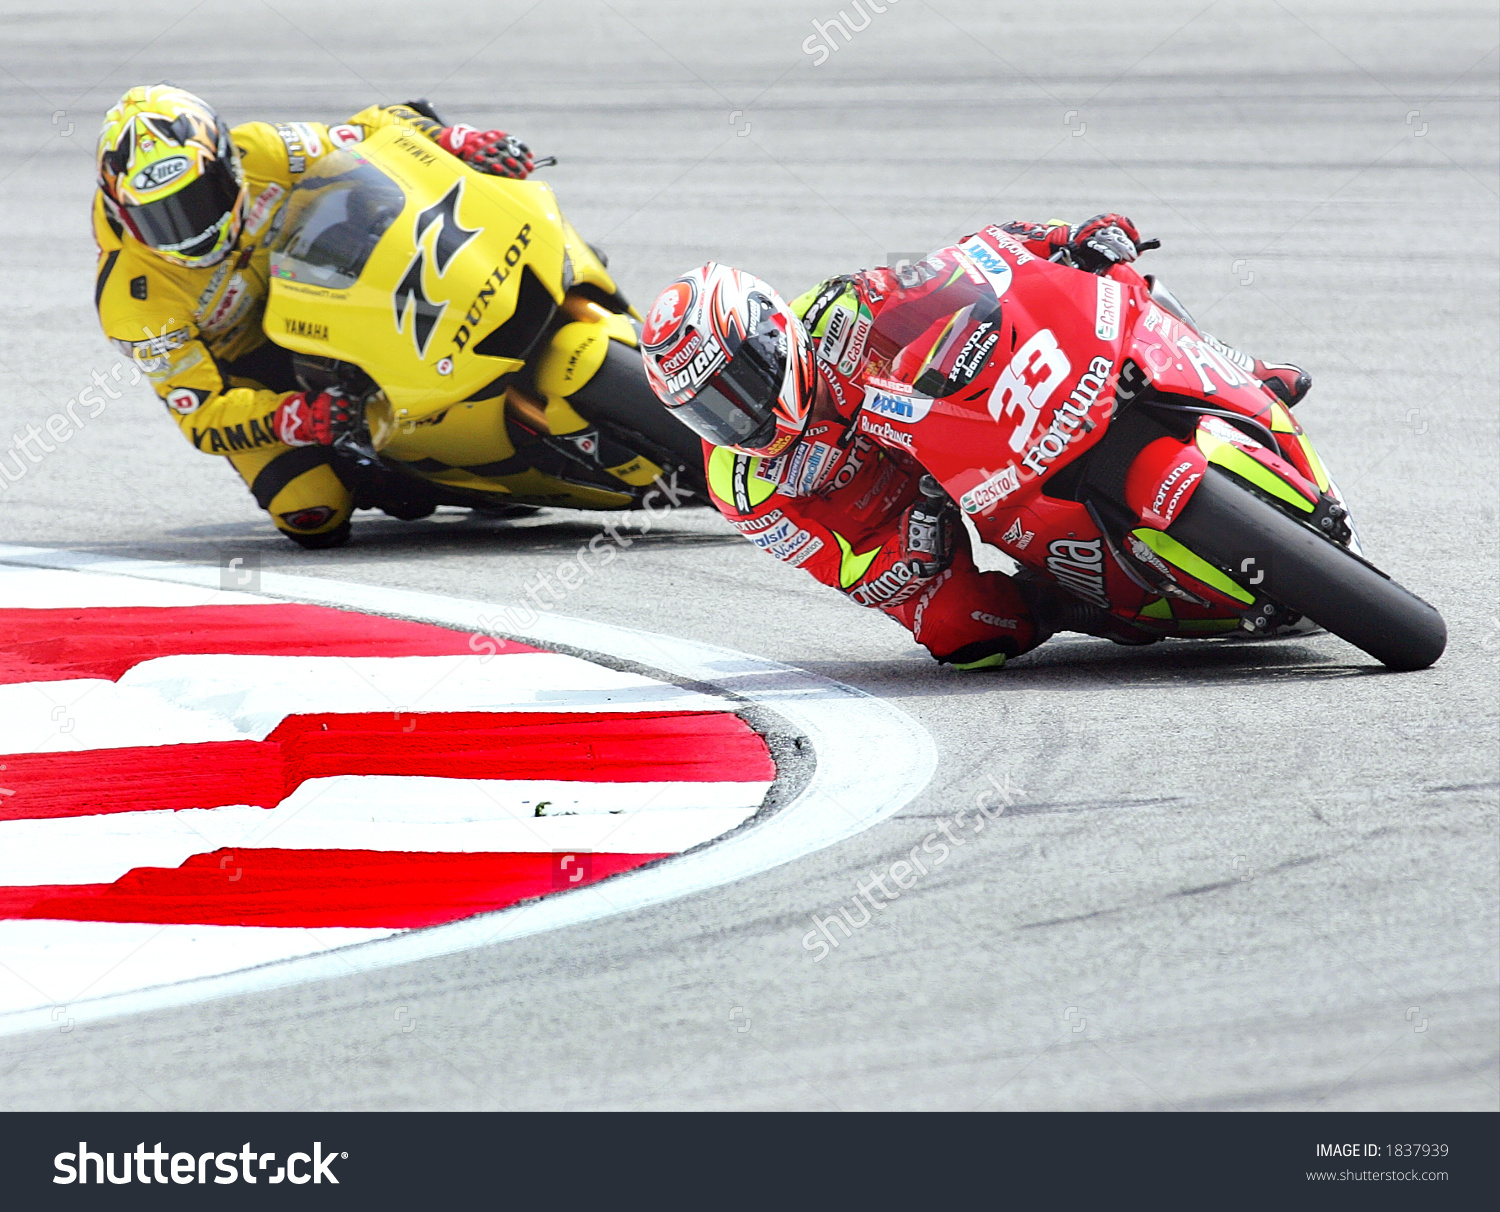 Motogp Rider Italian Marco Melandri 33 Stock Photo 1837939.